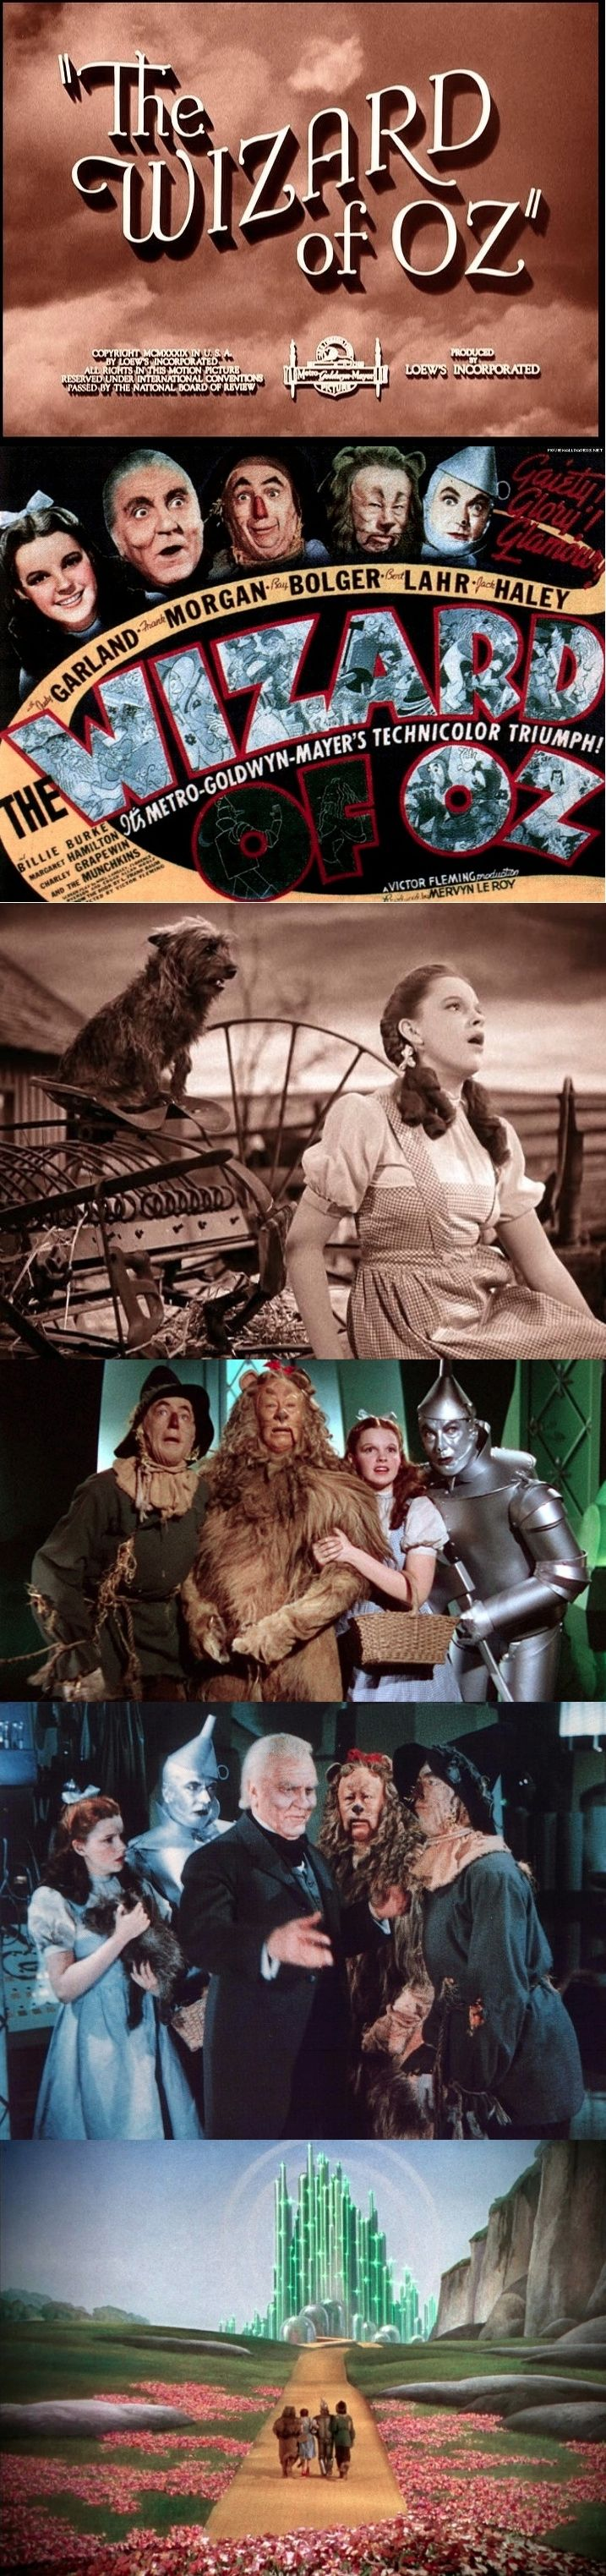 "The Oscars will honor the 75th anniversary of ""The Wizard of Oz,"" a best picture nominee in 1939. ""The Wizard of Oz"" received six Oscar nominations, winning two for Original Score and Song. Oscars for outstanding film achievements of 2013 will be presented on Oscar Sunday, March 2, 2014, at the Dolby Theatre® at Hollywood and Highland Center® and televised live on the ABC Television Network."